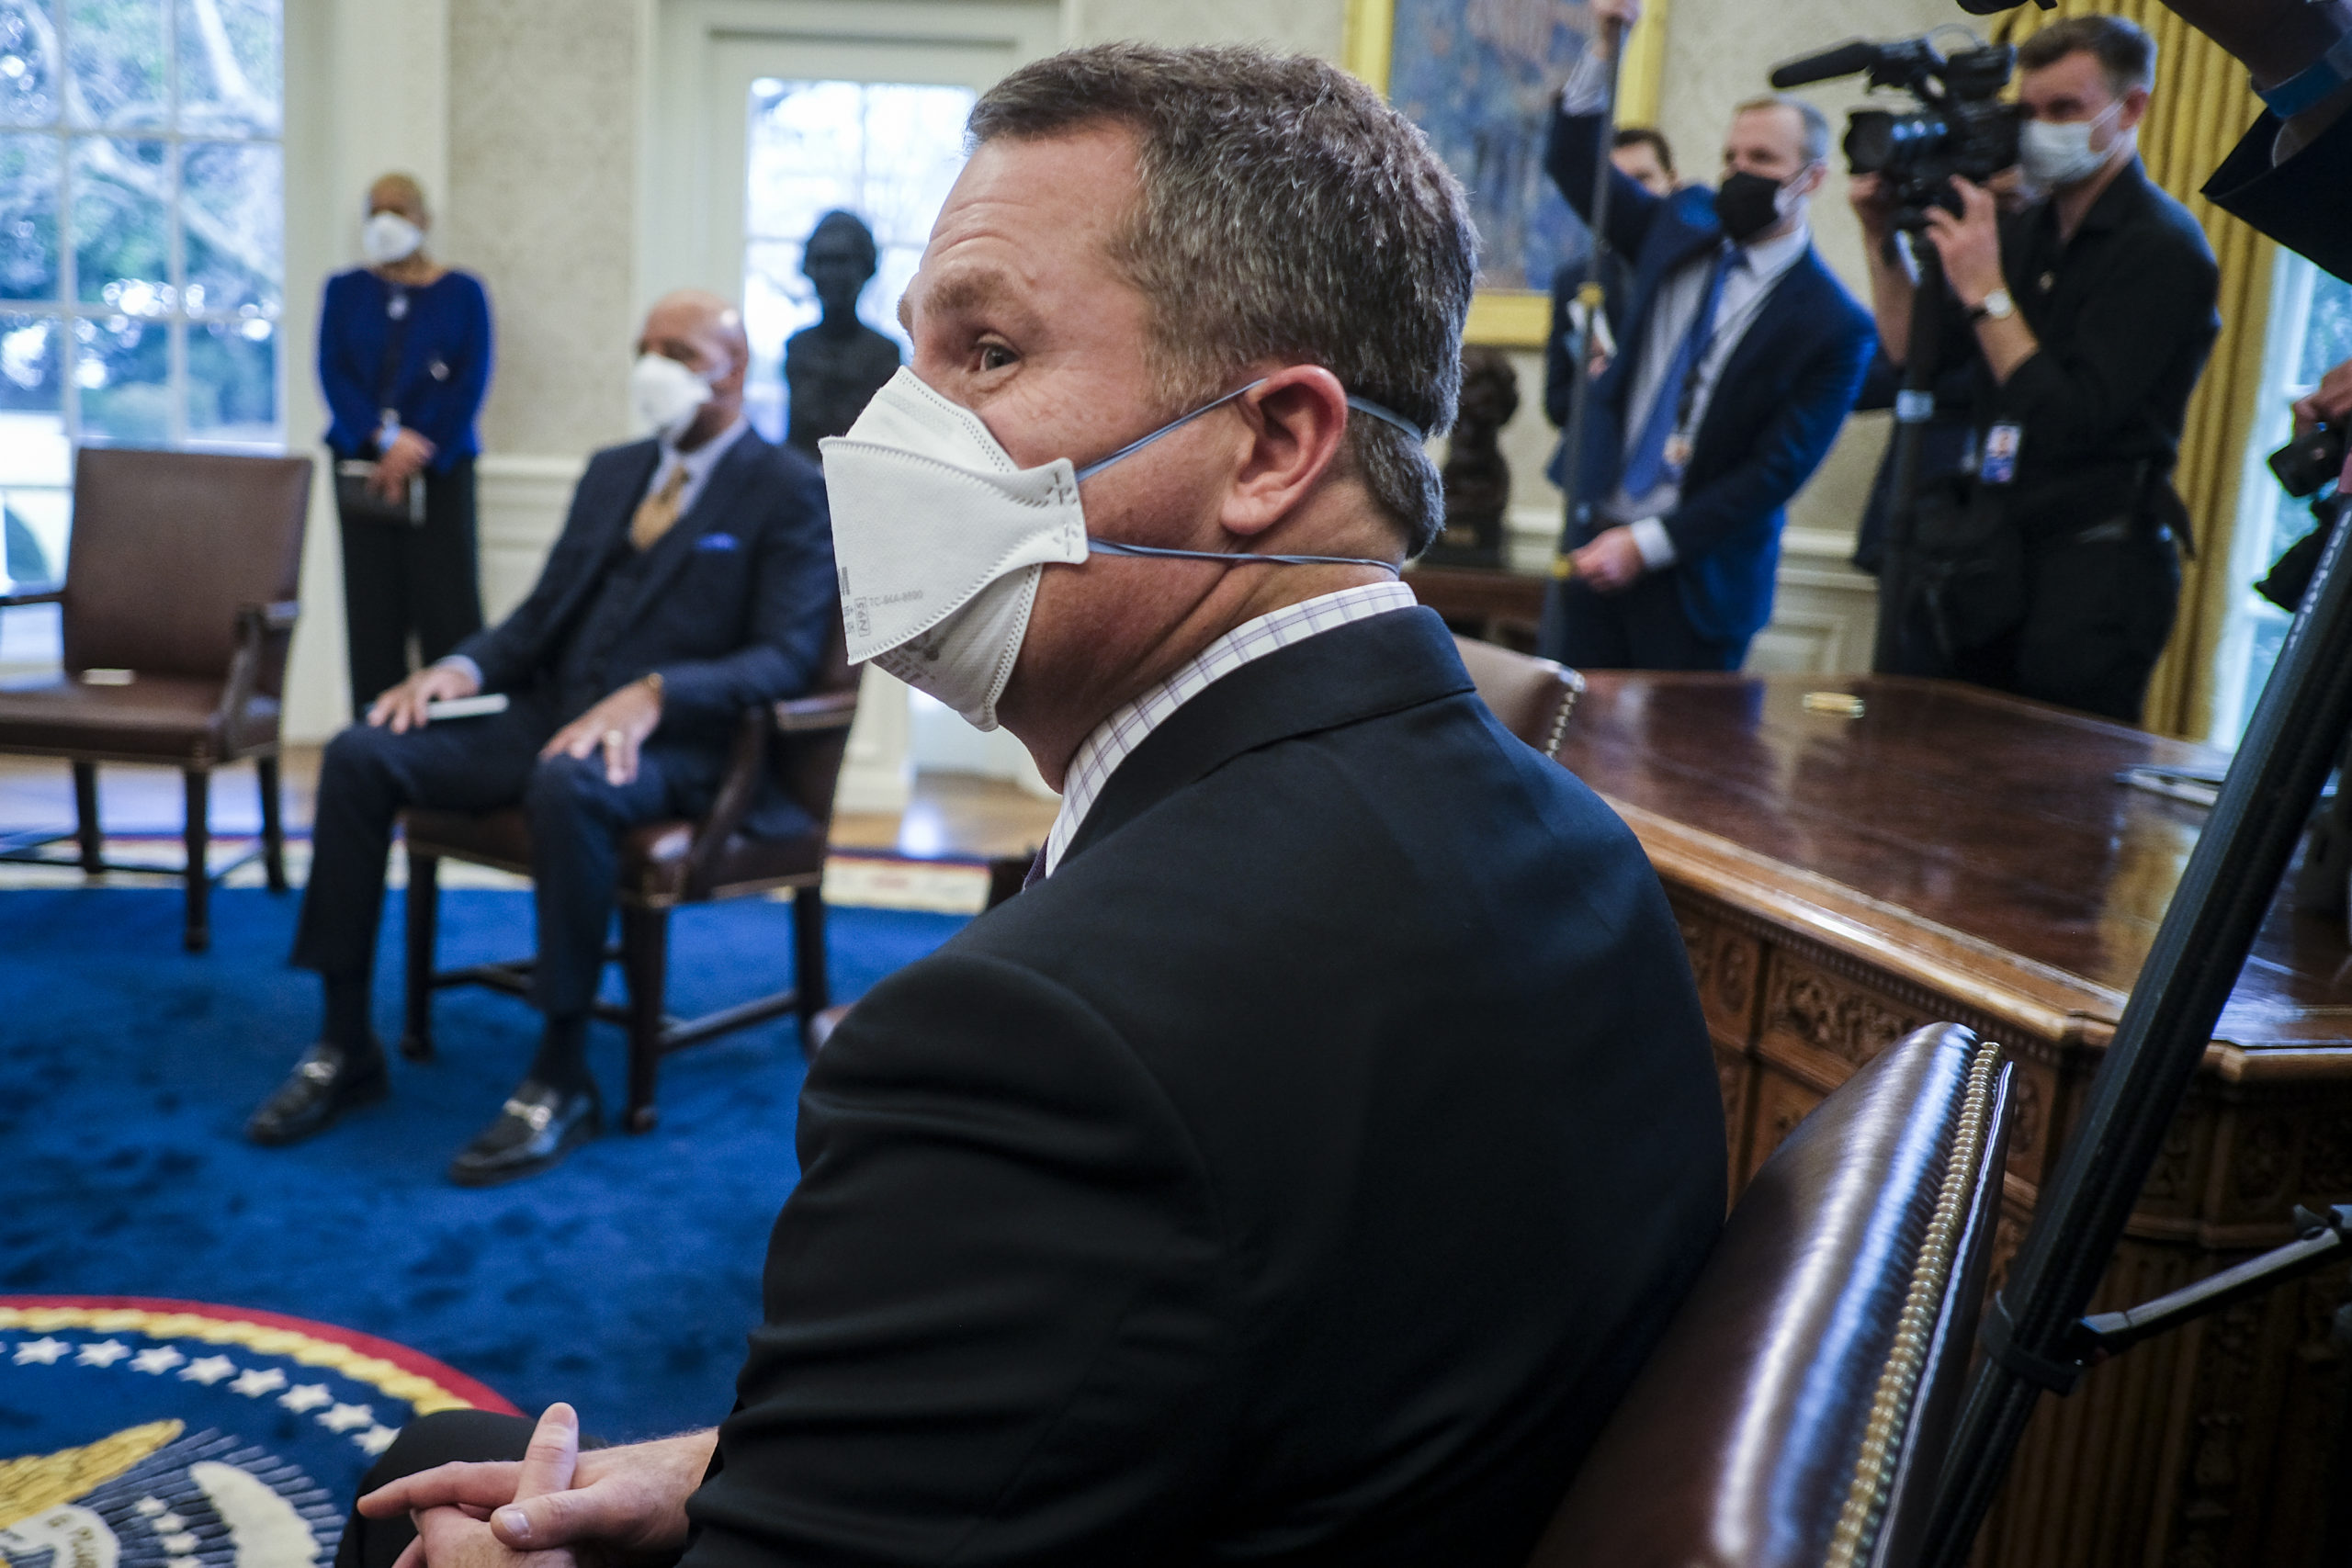 Doug McMillon, president and CEO of Walmart, listens during a meeting with President Joe Biden in the Oval Office on Feb. 9. (Pete Marovich/Pool/Getty Images)